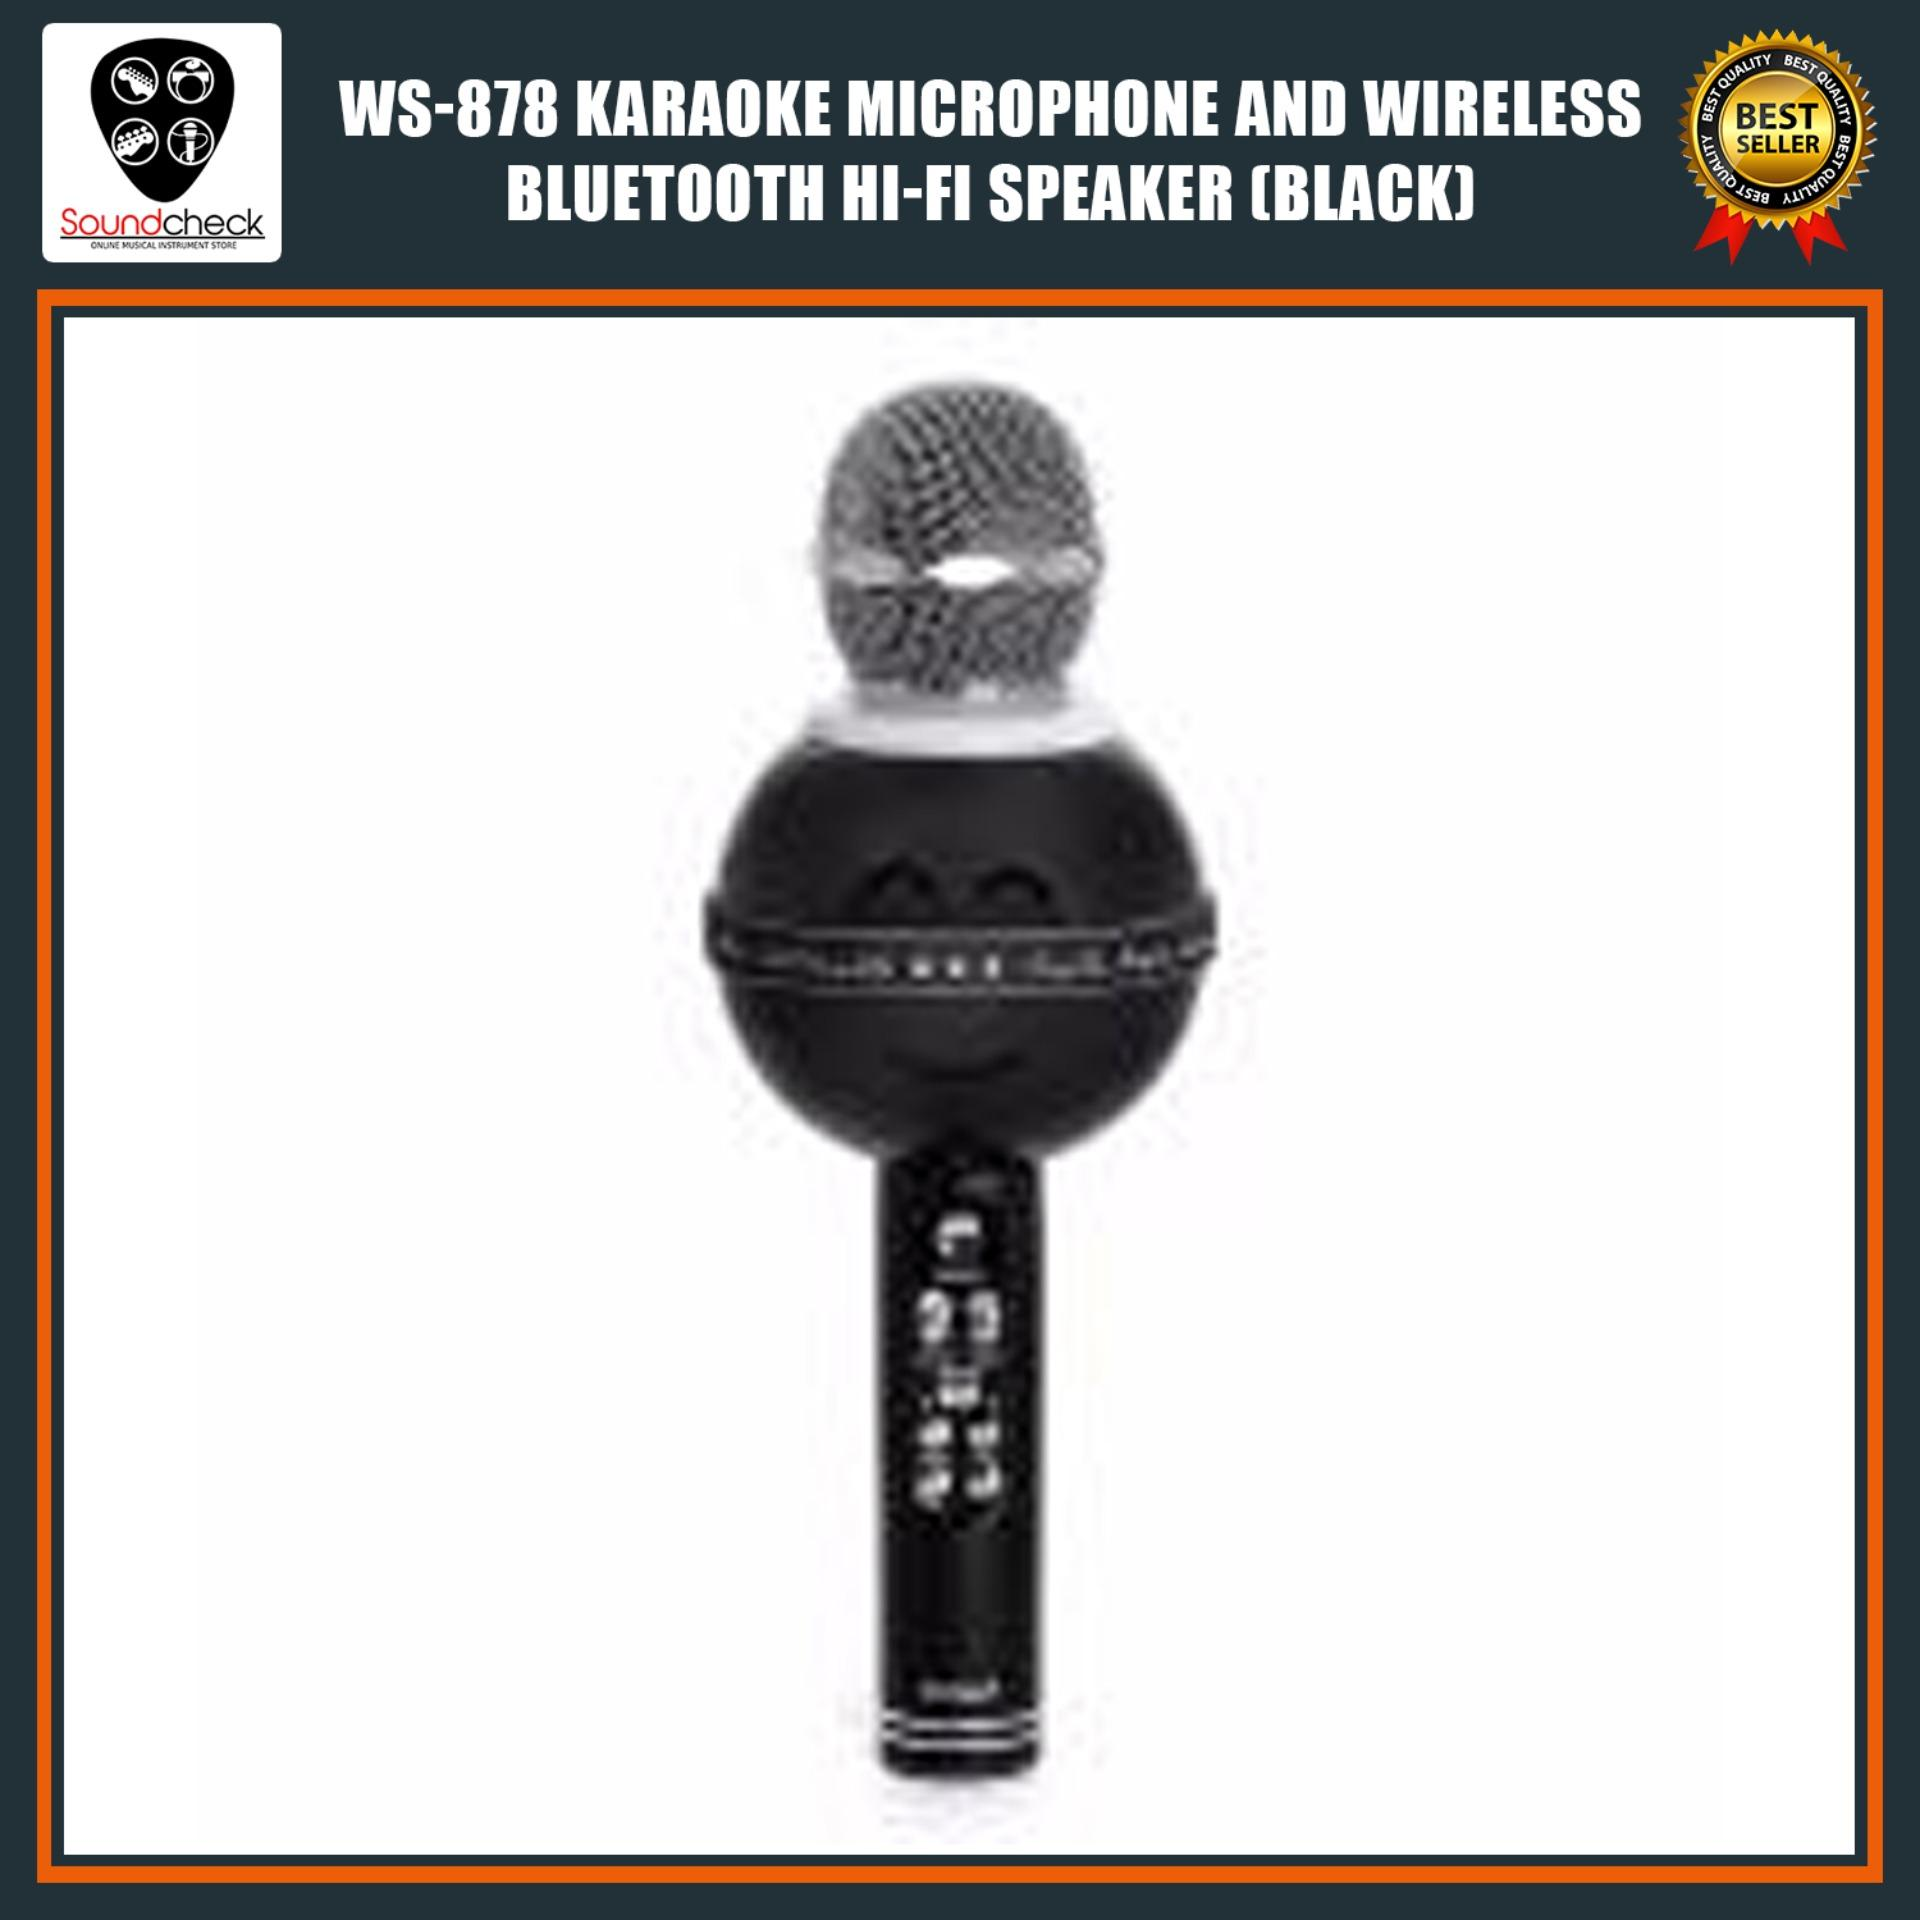 WS-878 Karaoke Microphone and Wireless Bluetooth Hi-Fi Speaker (Black)